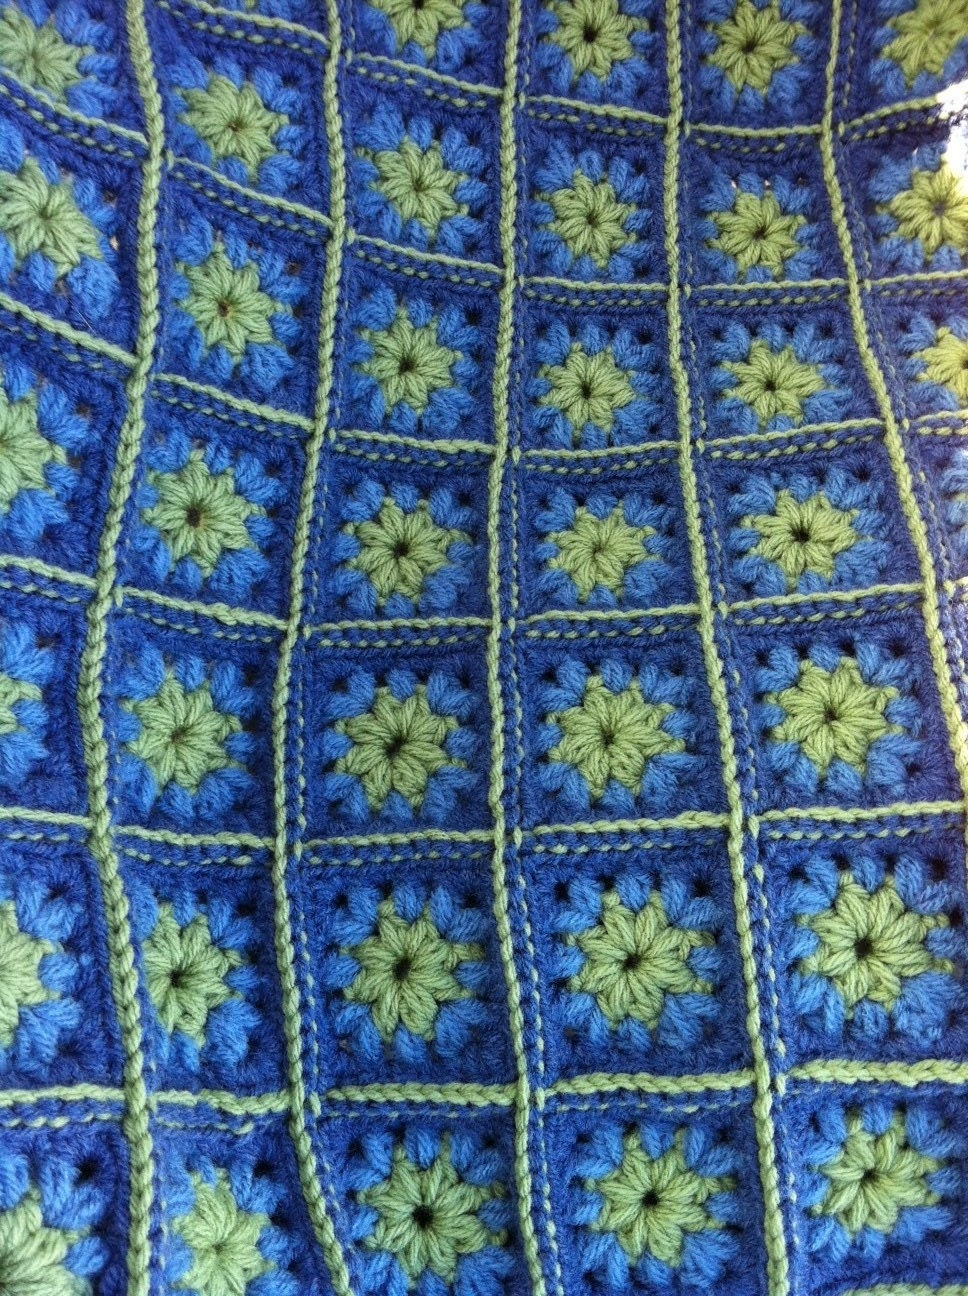 Crocheted Granny Square Afghan Fern Green Bluesready To Ship